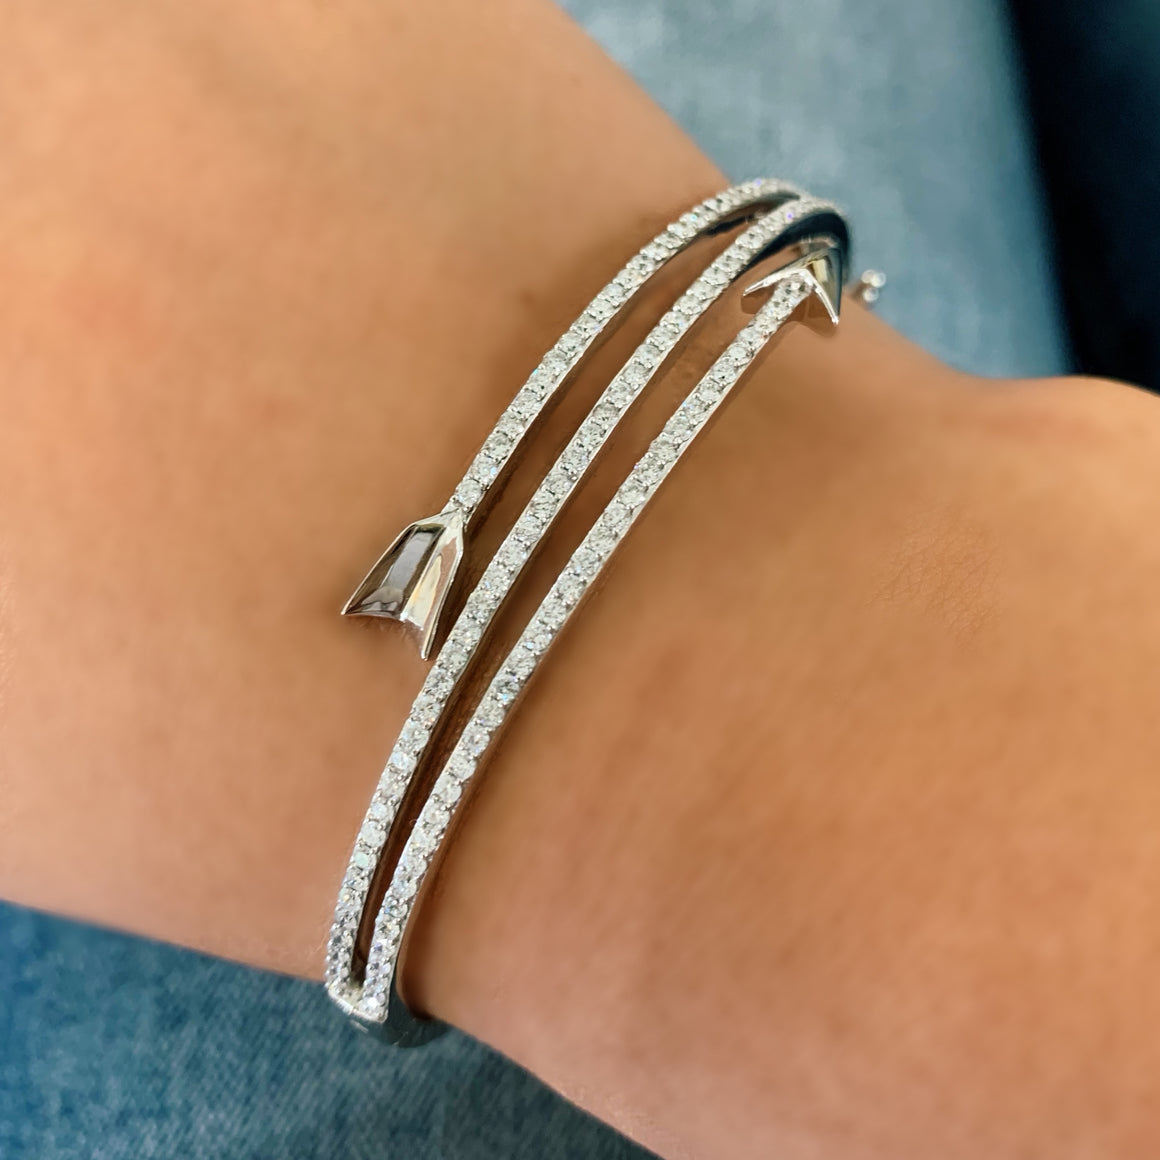 Diamond Arrow Cuff Bracelet - White Gold - Talisman Collection Fine Jewelers